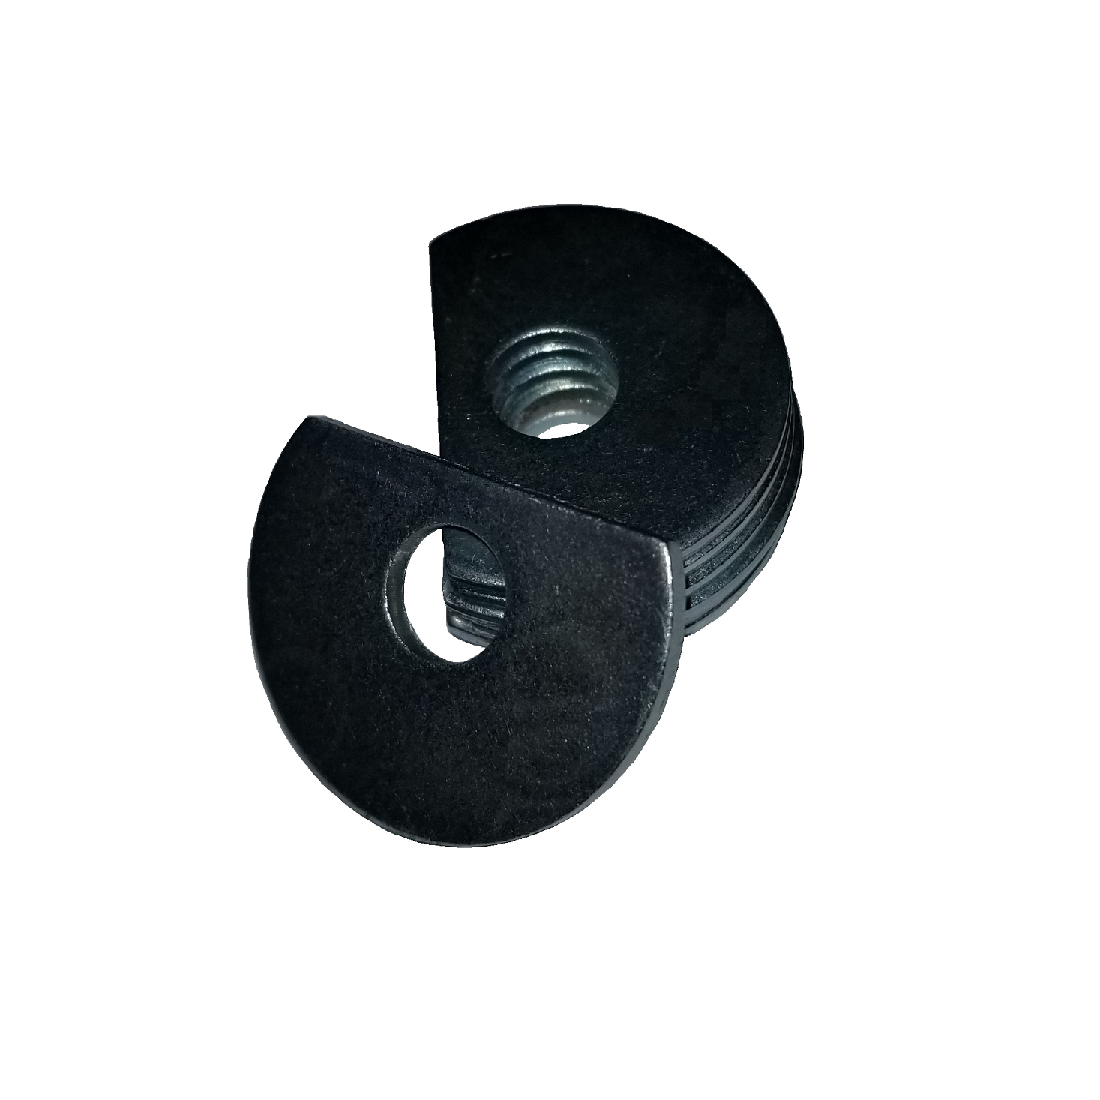 Clipped OD Washer - 0.656 ID, 1.312 OD, 0.092 Thick, Low Carbon Steel - Soft, Zinc & Yellow